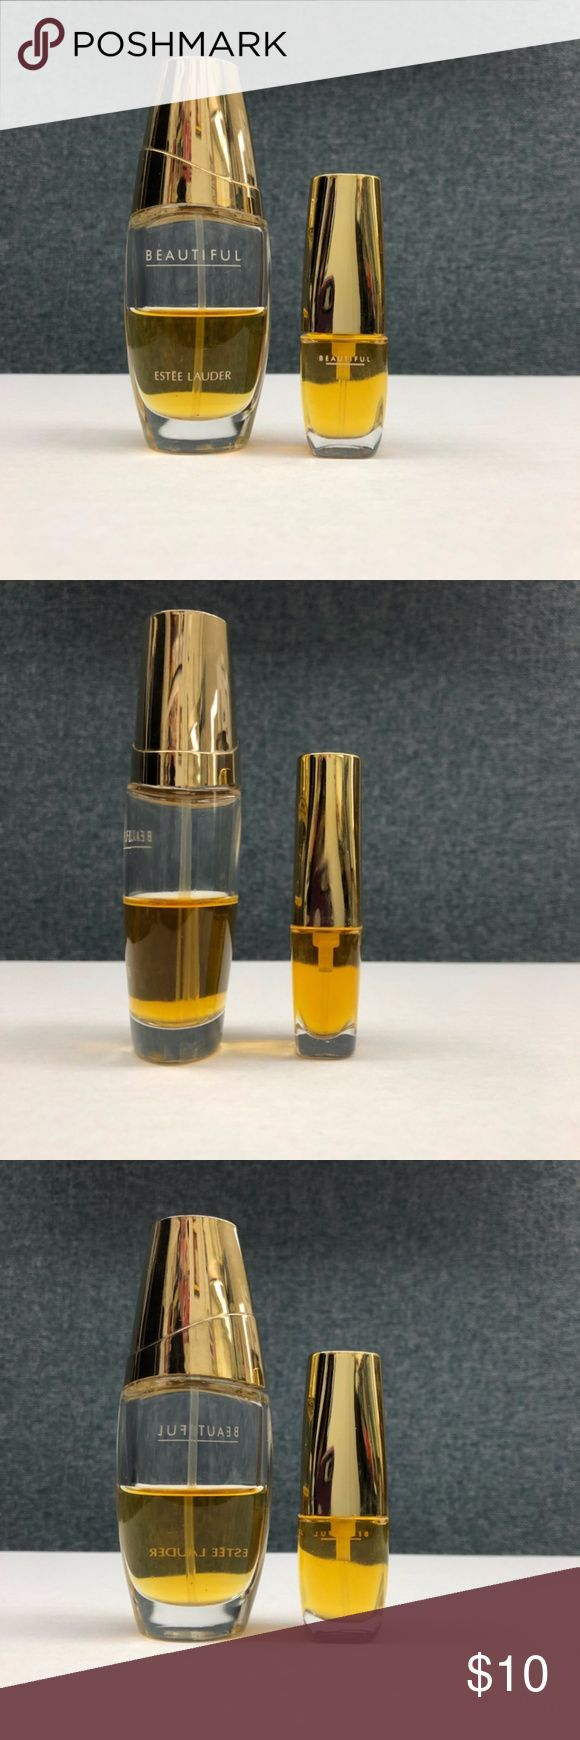 Estee Lauder Beautiful Eau De Parfum Used Estee Lauder Beautiful Eau De Parfum no box HALL FULL 30 ml 1 oz bottle Estee Lauder Beautiful perfume travel spray 4.7 ml and 5 ml  If you have questions, please ask Estee Lauder Other